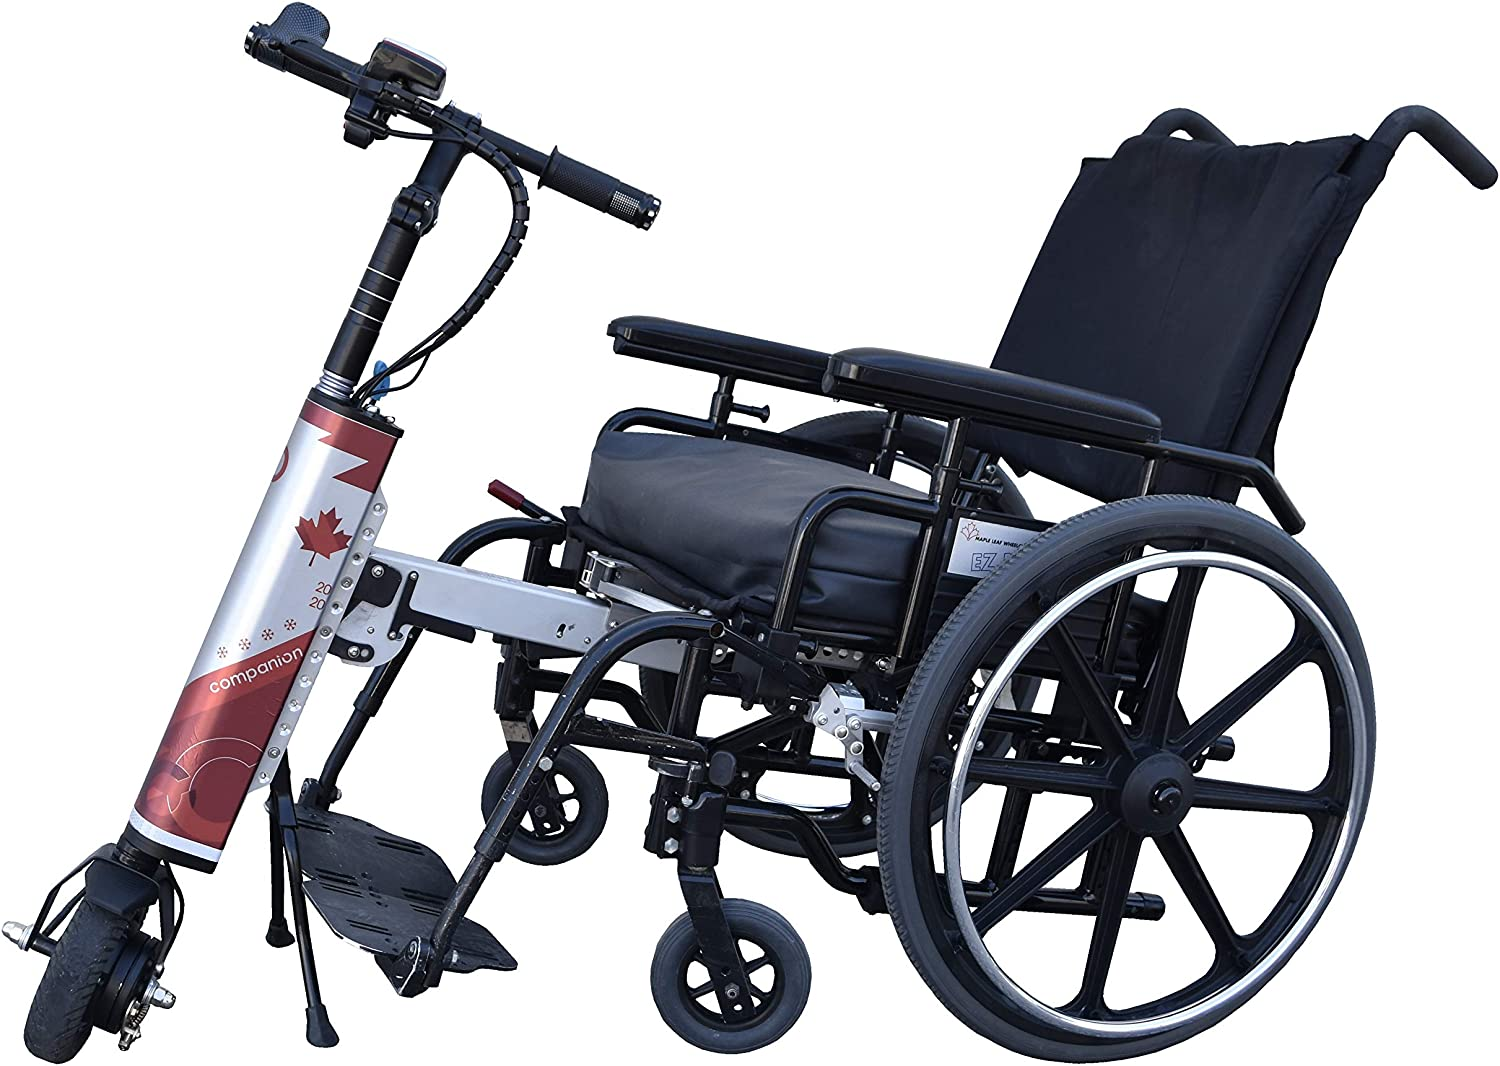 Amazon.com: Companion Power Assist for Folding Manual wheelchairs: Health &  Personal Care